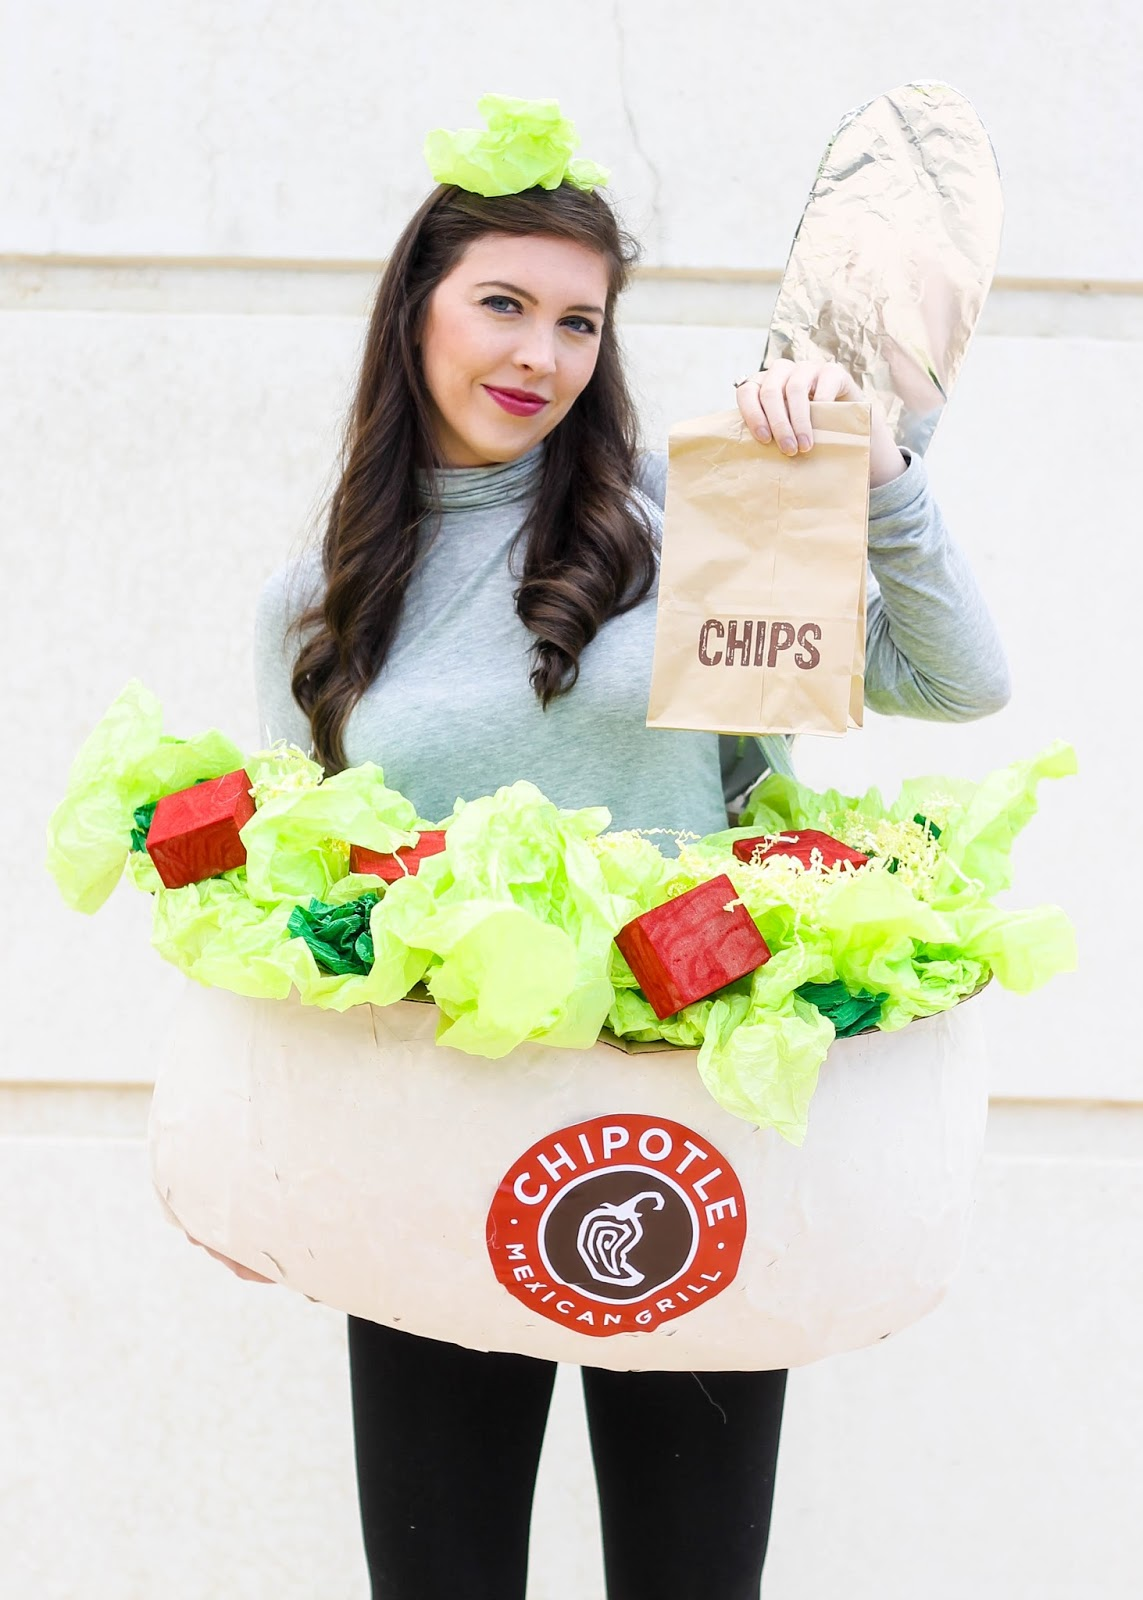 Chipotle Halloween 2020 Halloween Chipotle Costume DIY   Pretty in the Pines, New York